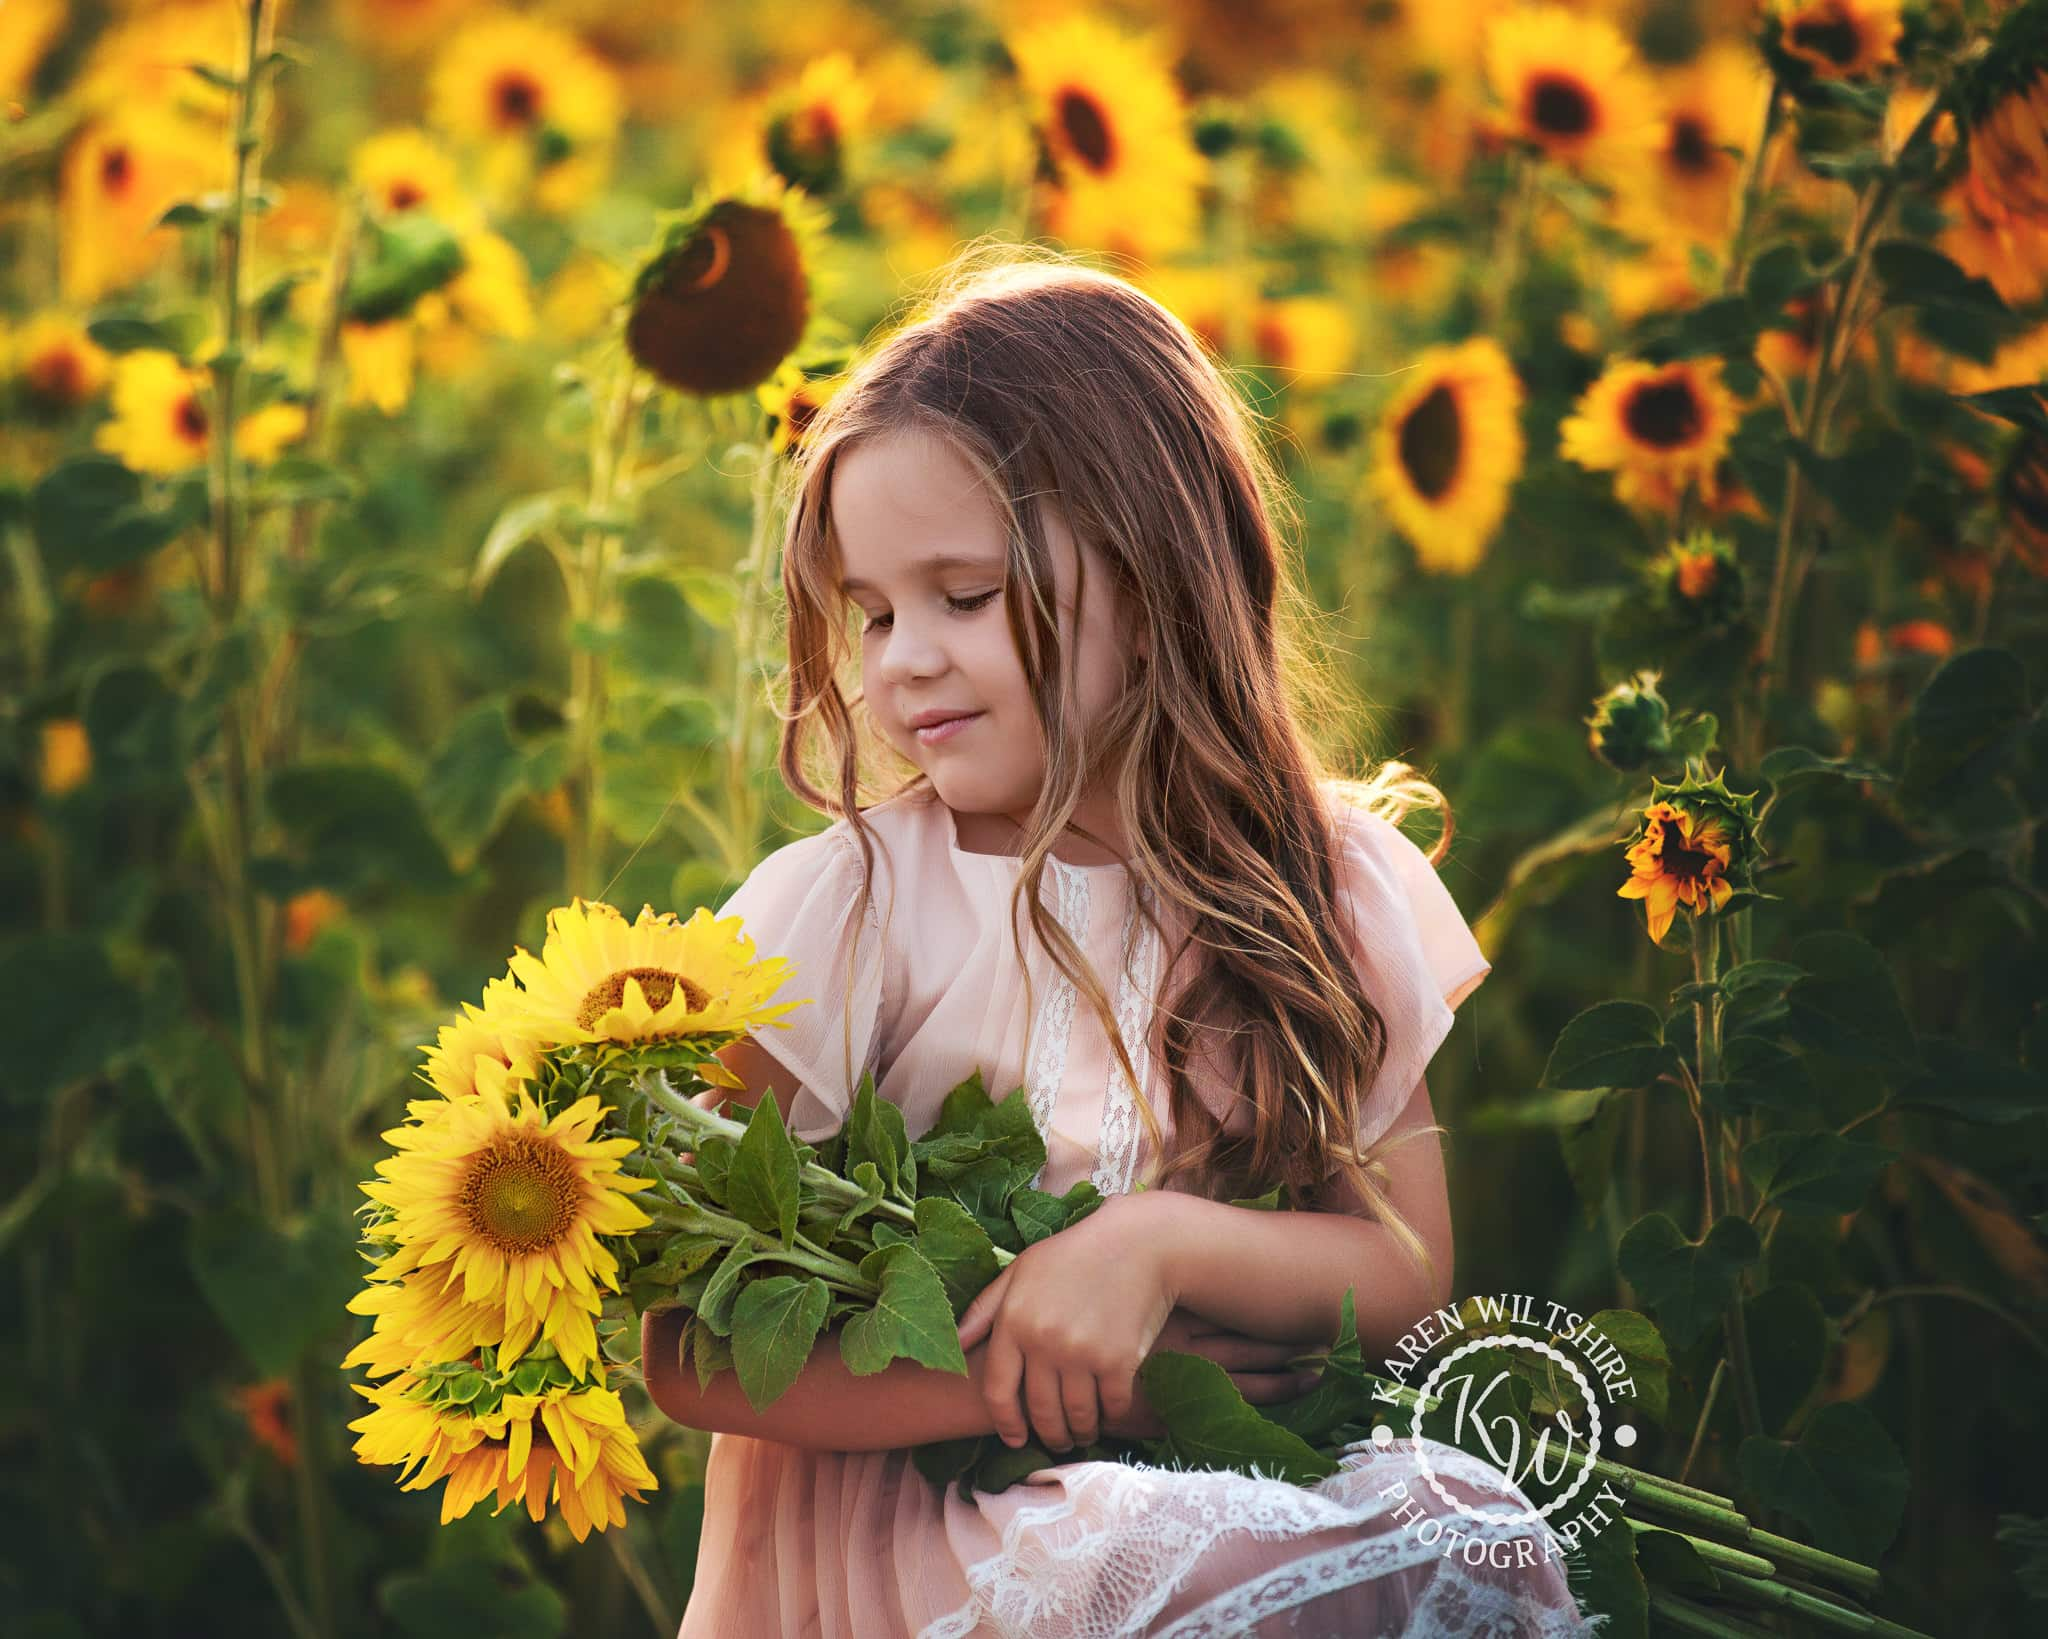 Young girl in Sunflower field